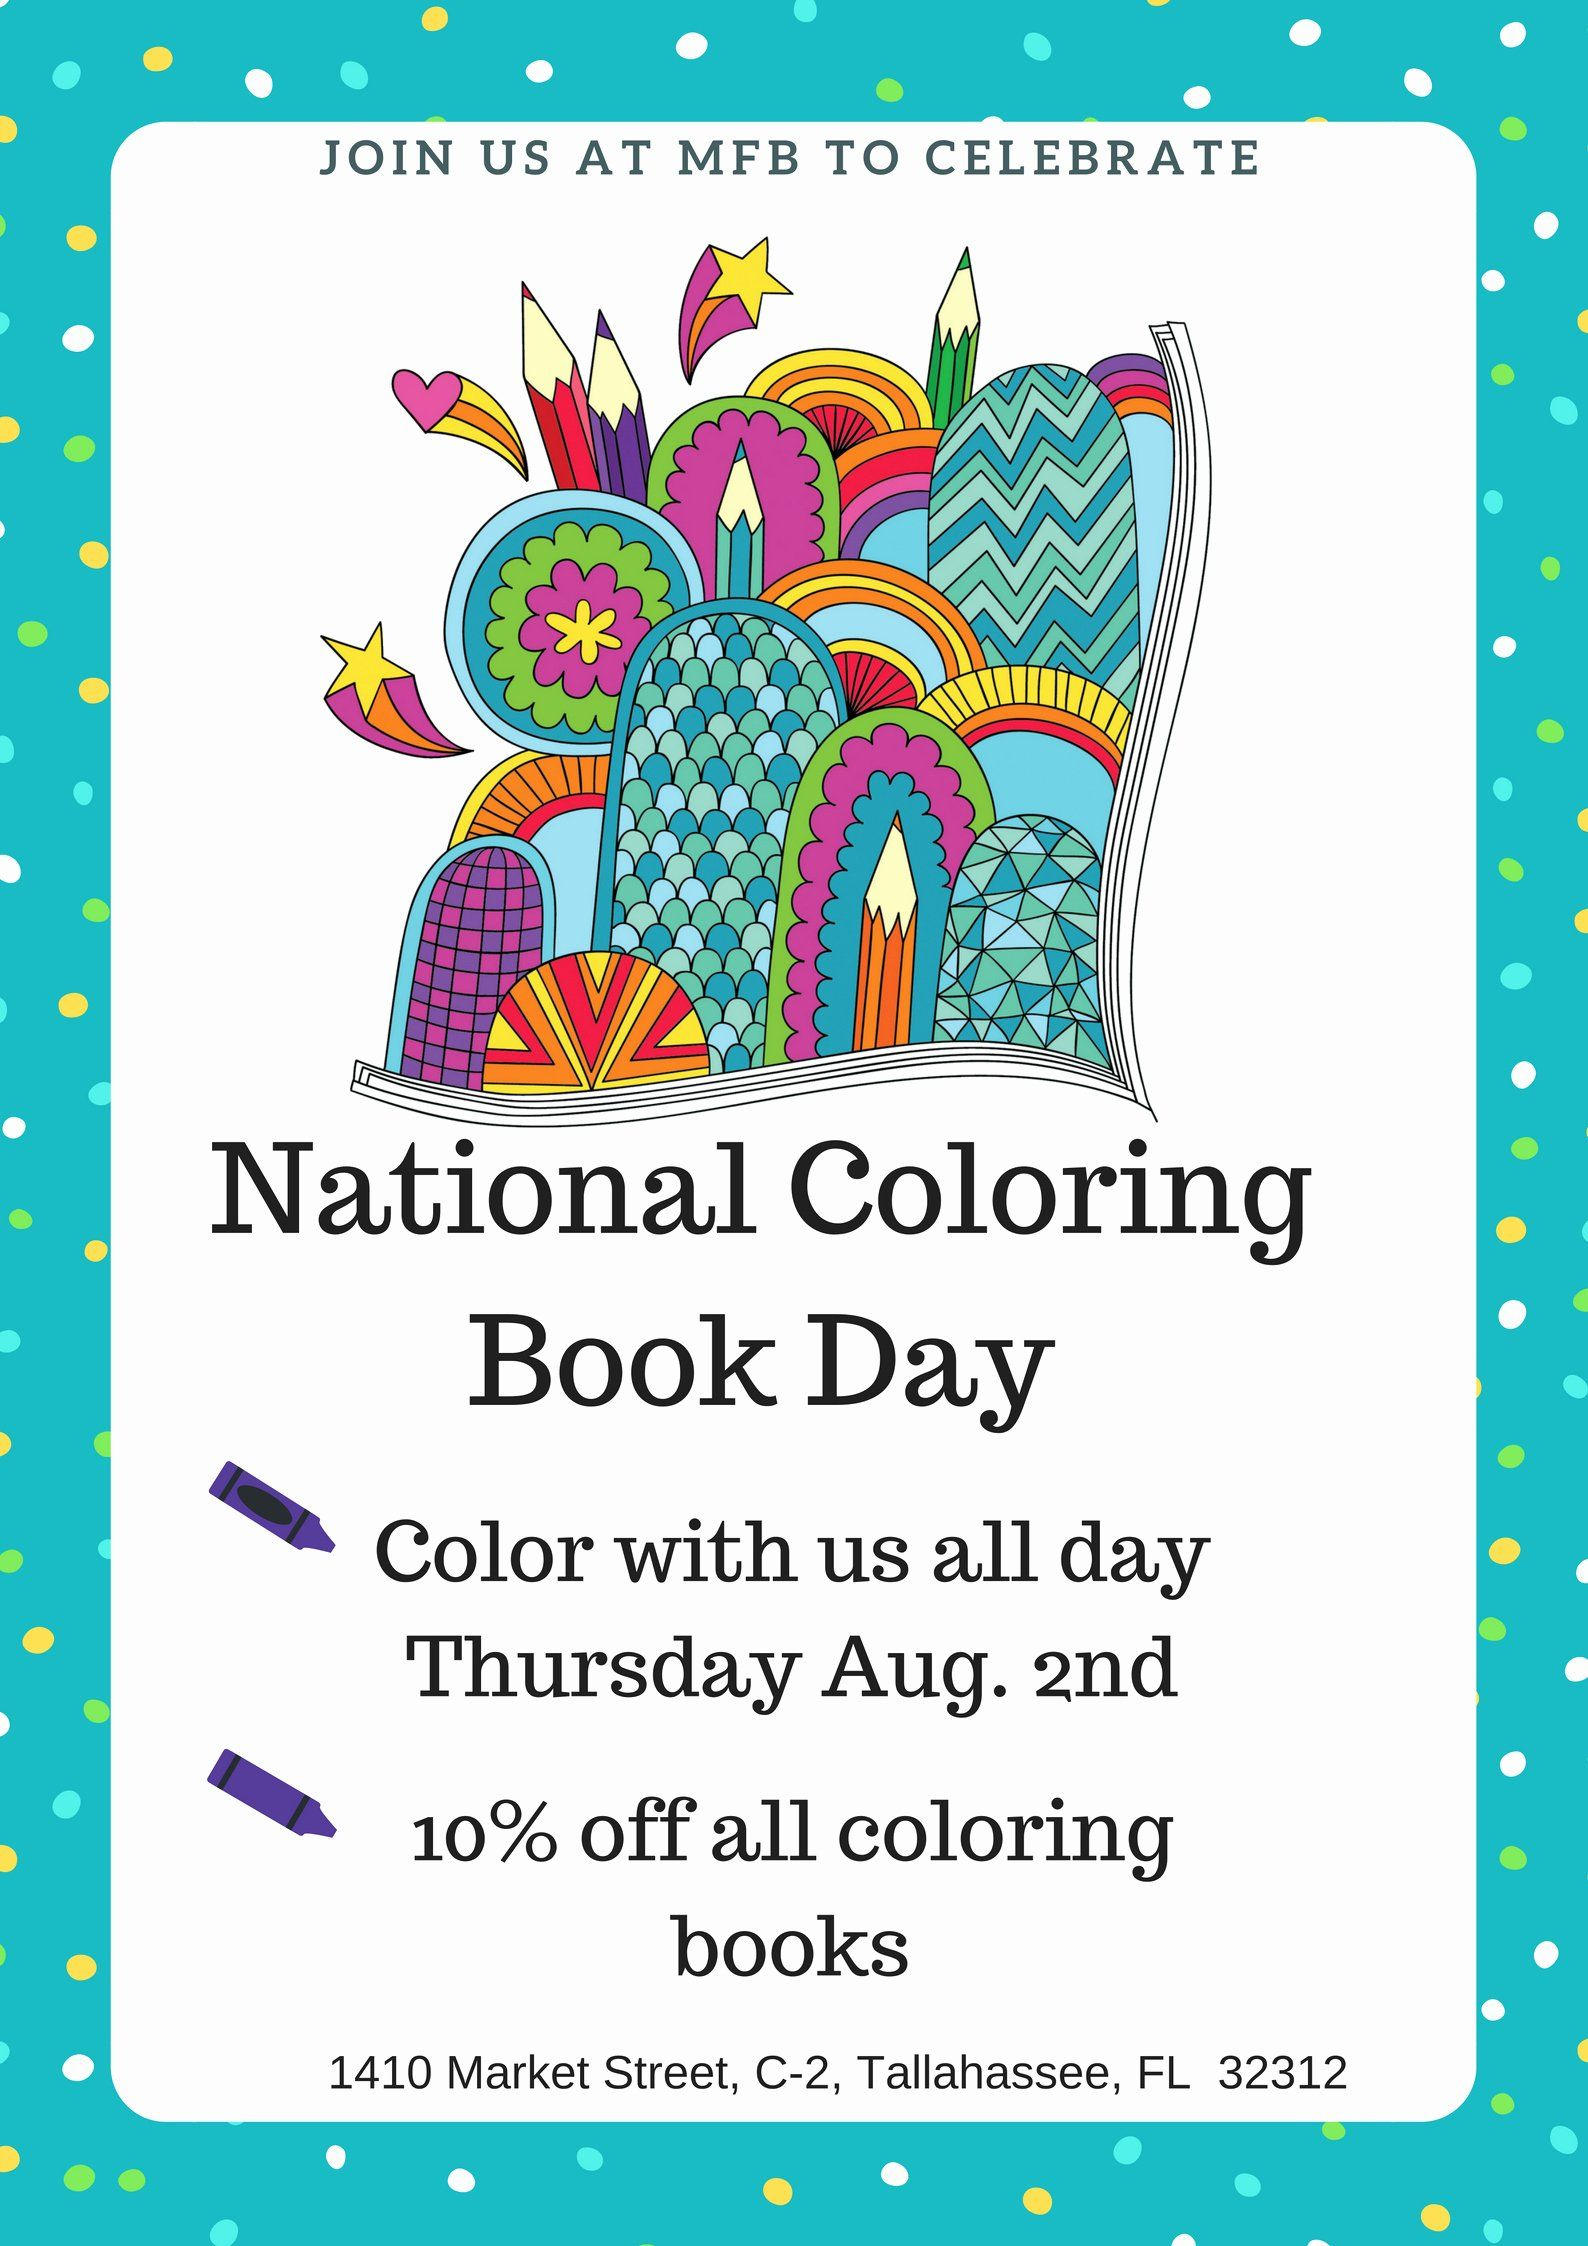 National Coloring Book Day Unique National Coloring Book Day Presented By My Favorite Books Toddler Coloring Book Coloring Books King Coloring Book